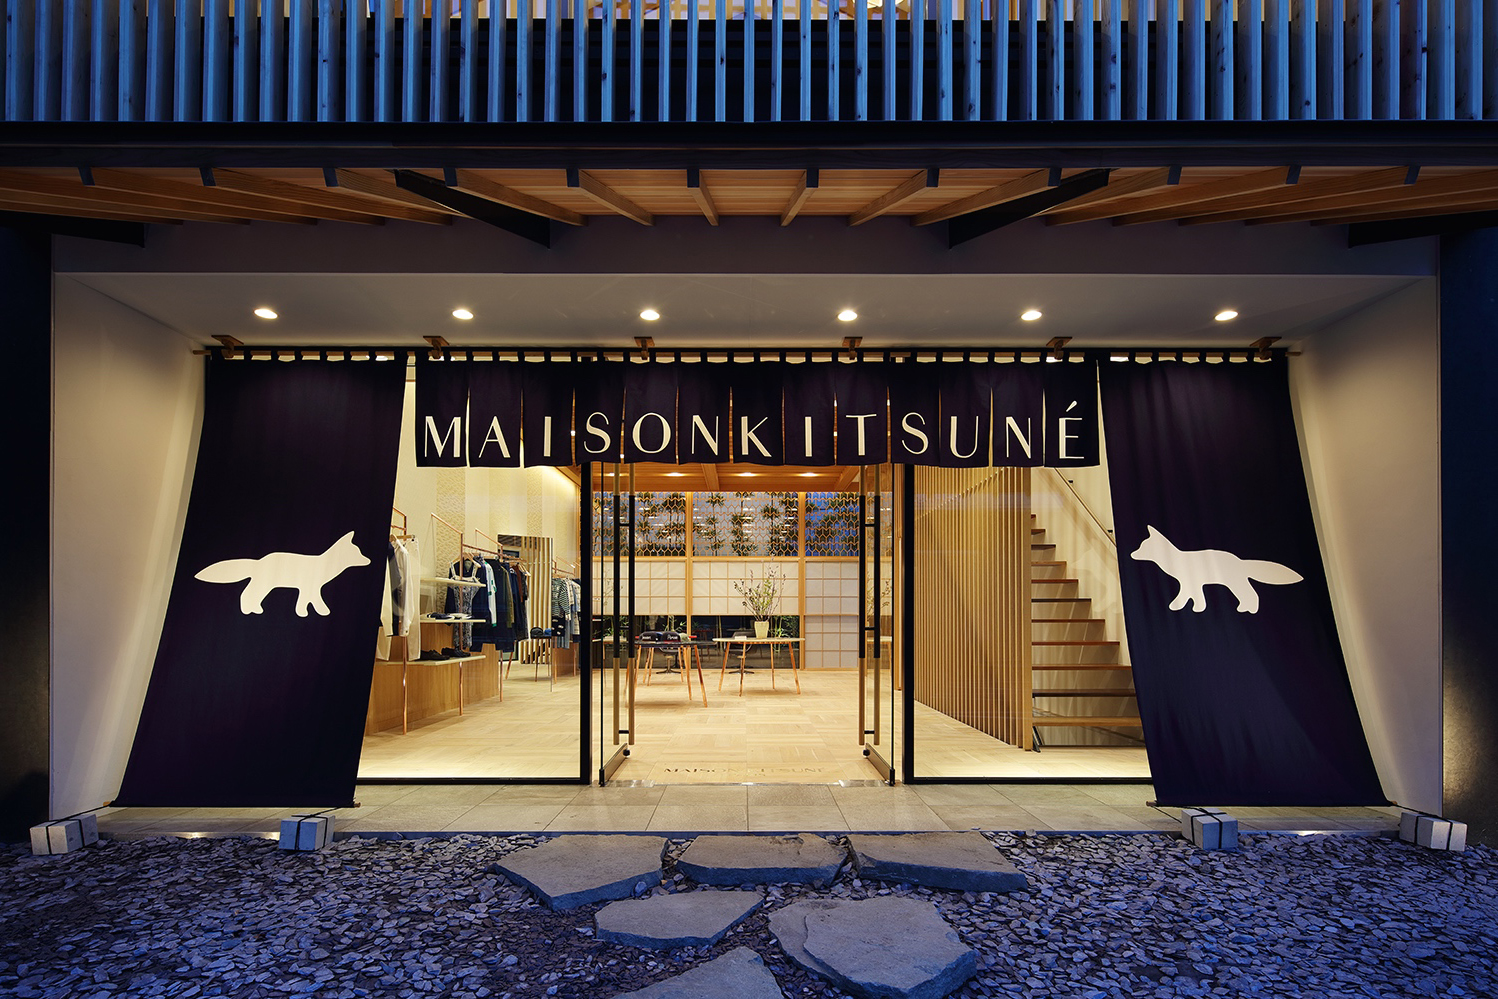 Maison kitsun opens boutique in daikanyama hypebeast for Boutique decoration maison